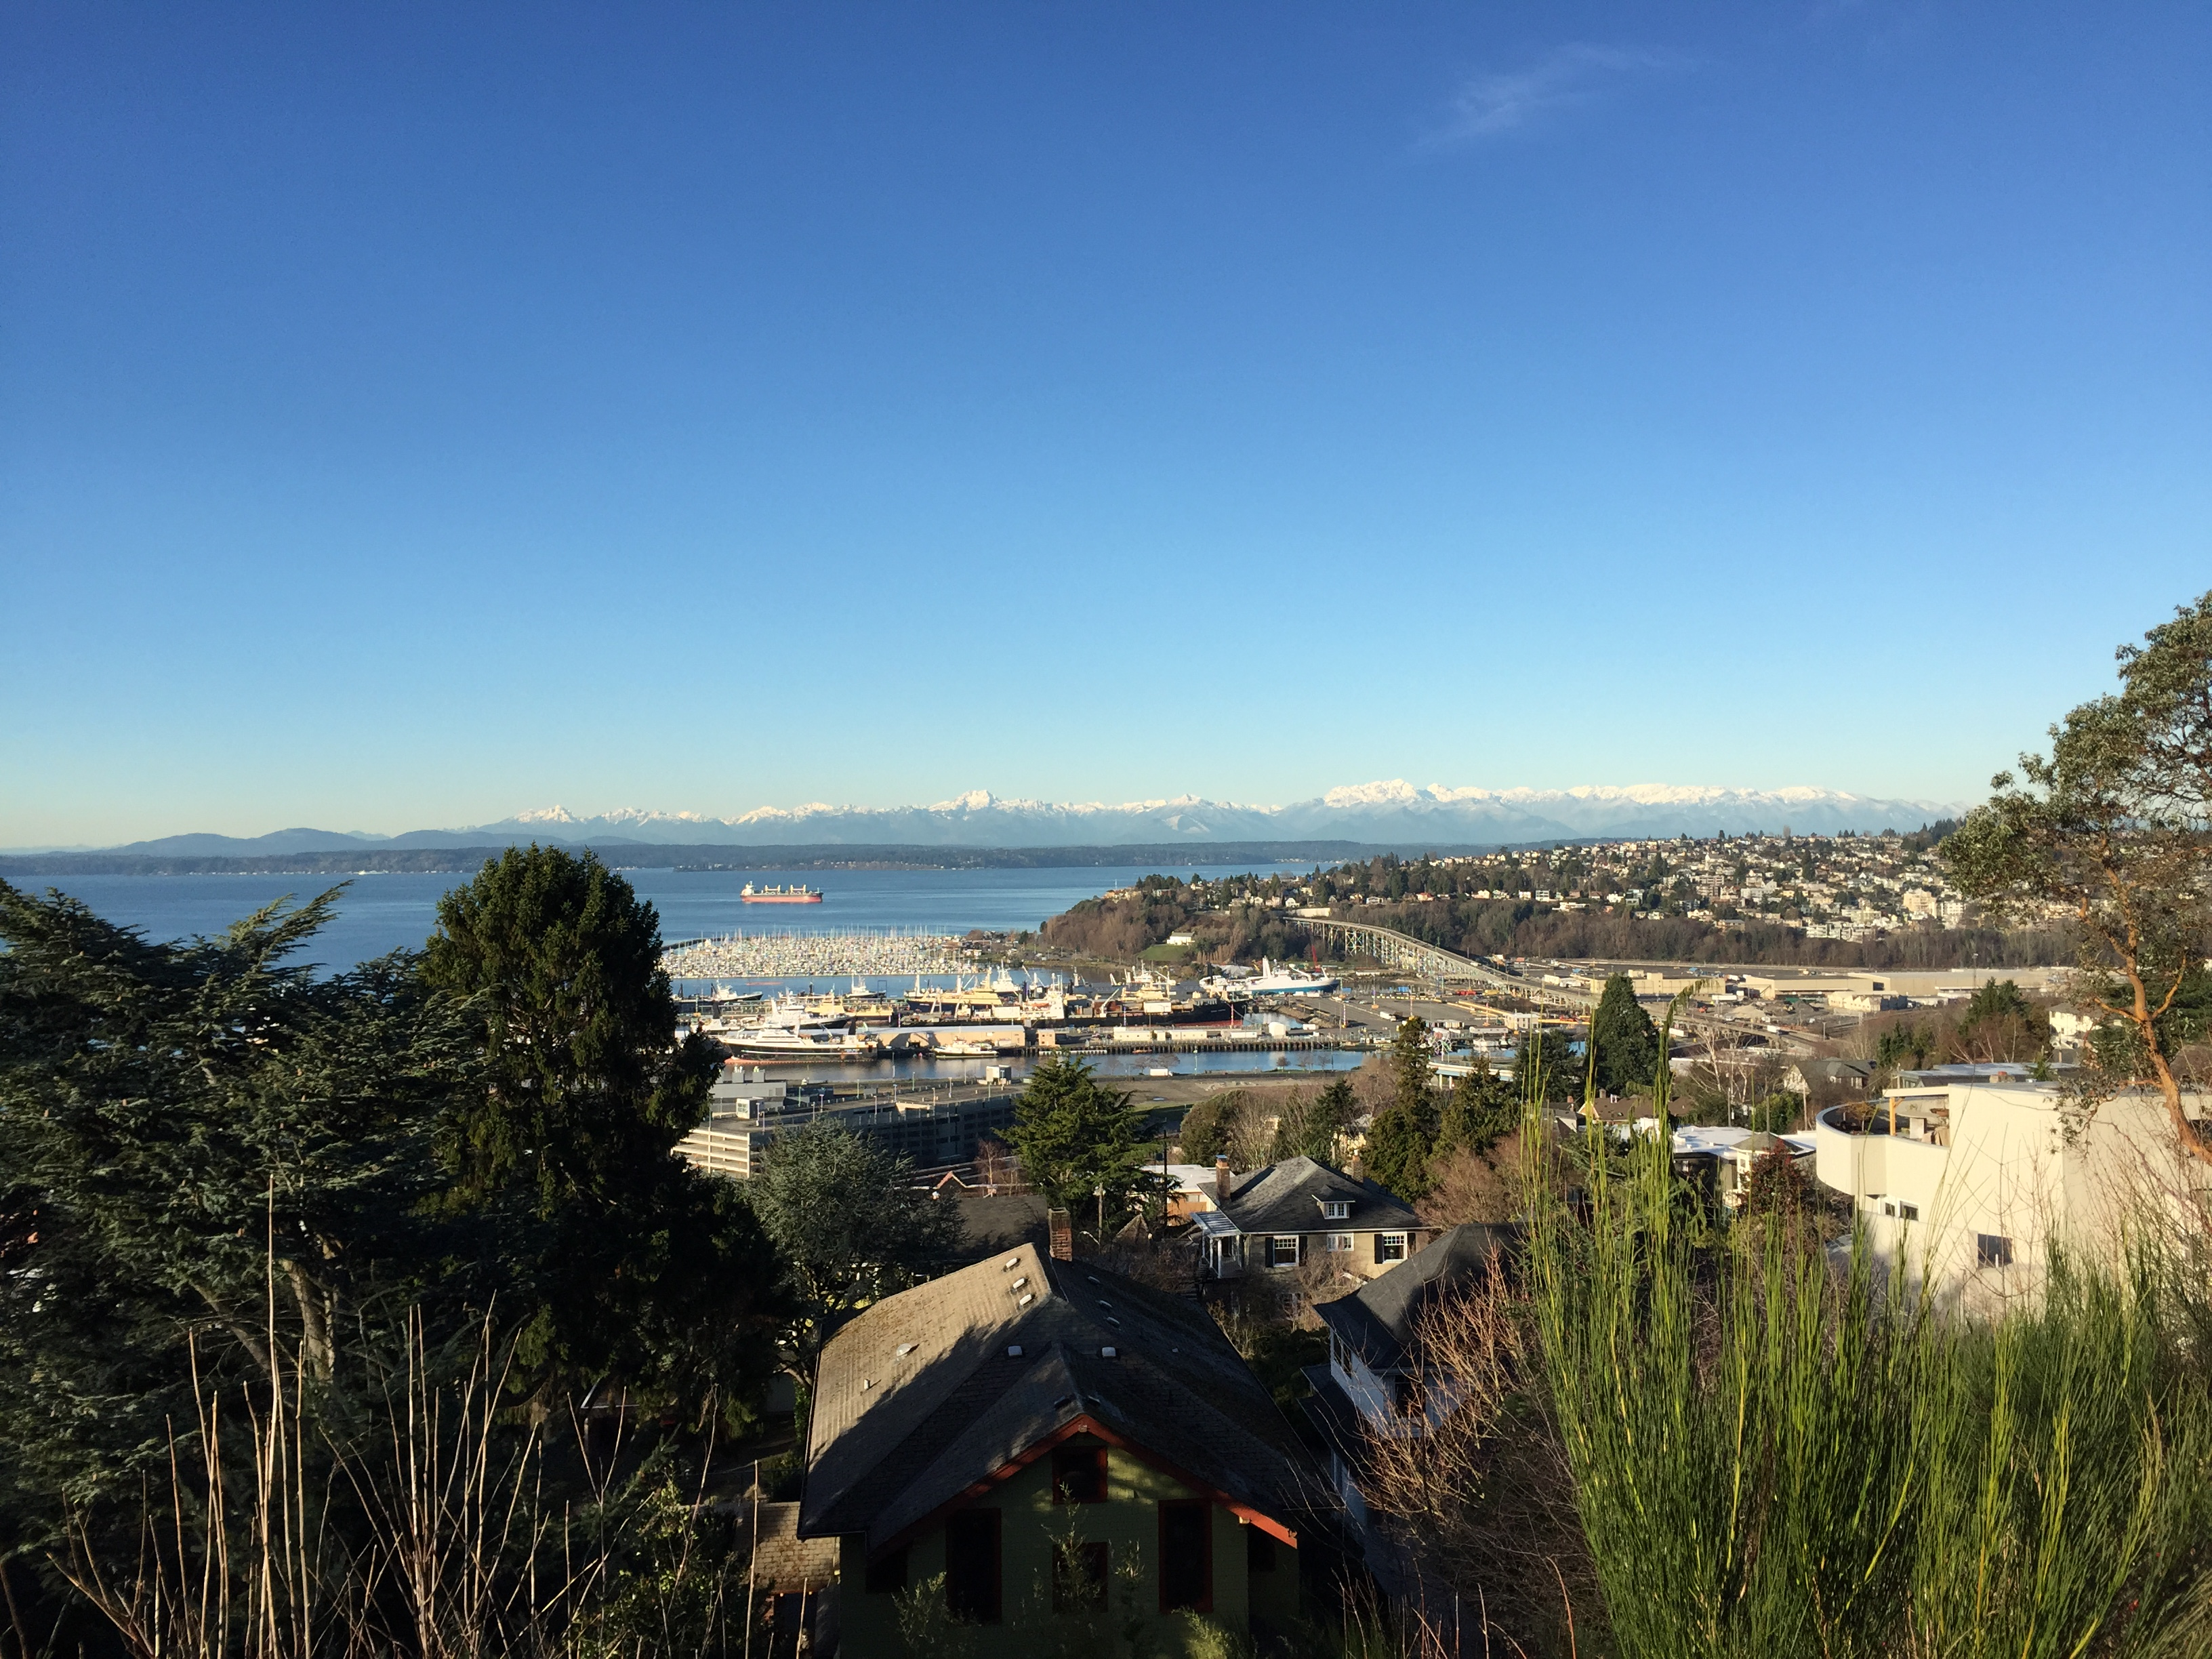 View of Puget Sound and the Olympics from Marshall Park